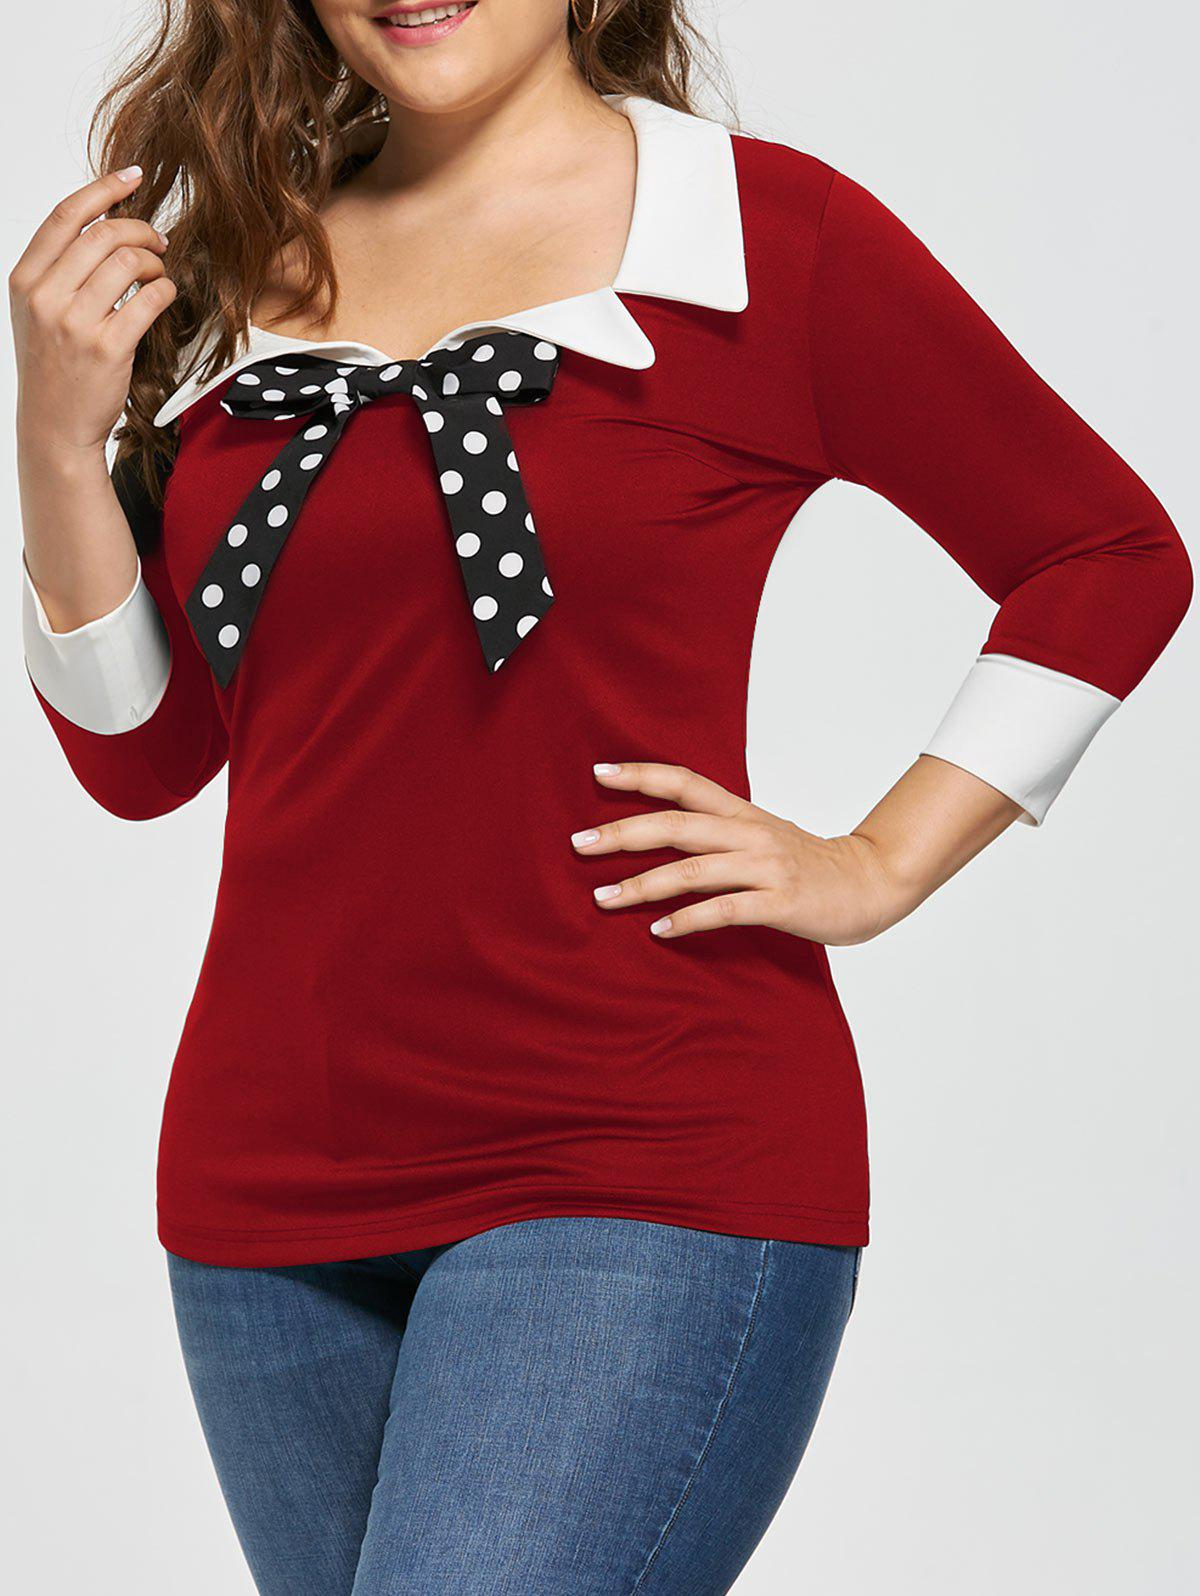 Plus Size Bow Tie Two Tone Longline BlouseWOMEN<br><br>Size: 3XL; Color: RED; Material: Polyester,Spandex; Shirt Length: Long; Sleeve Length: Three Quarter; Collar: Bow Tie Collar; Style: Fashion; Season: Fall,Spring,Summer; Embellishment: Bowknot; Pattern Type: Polka Dot; Weight: 0.3000kg; Package Contents: 1 x Blouse;